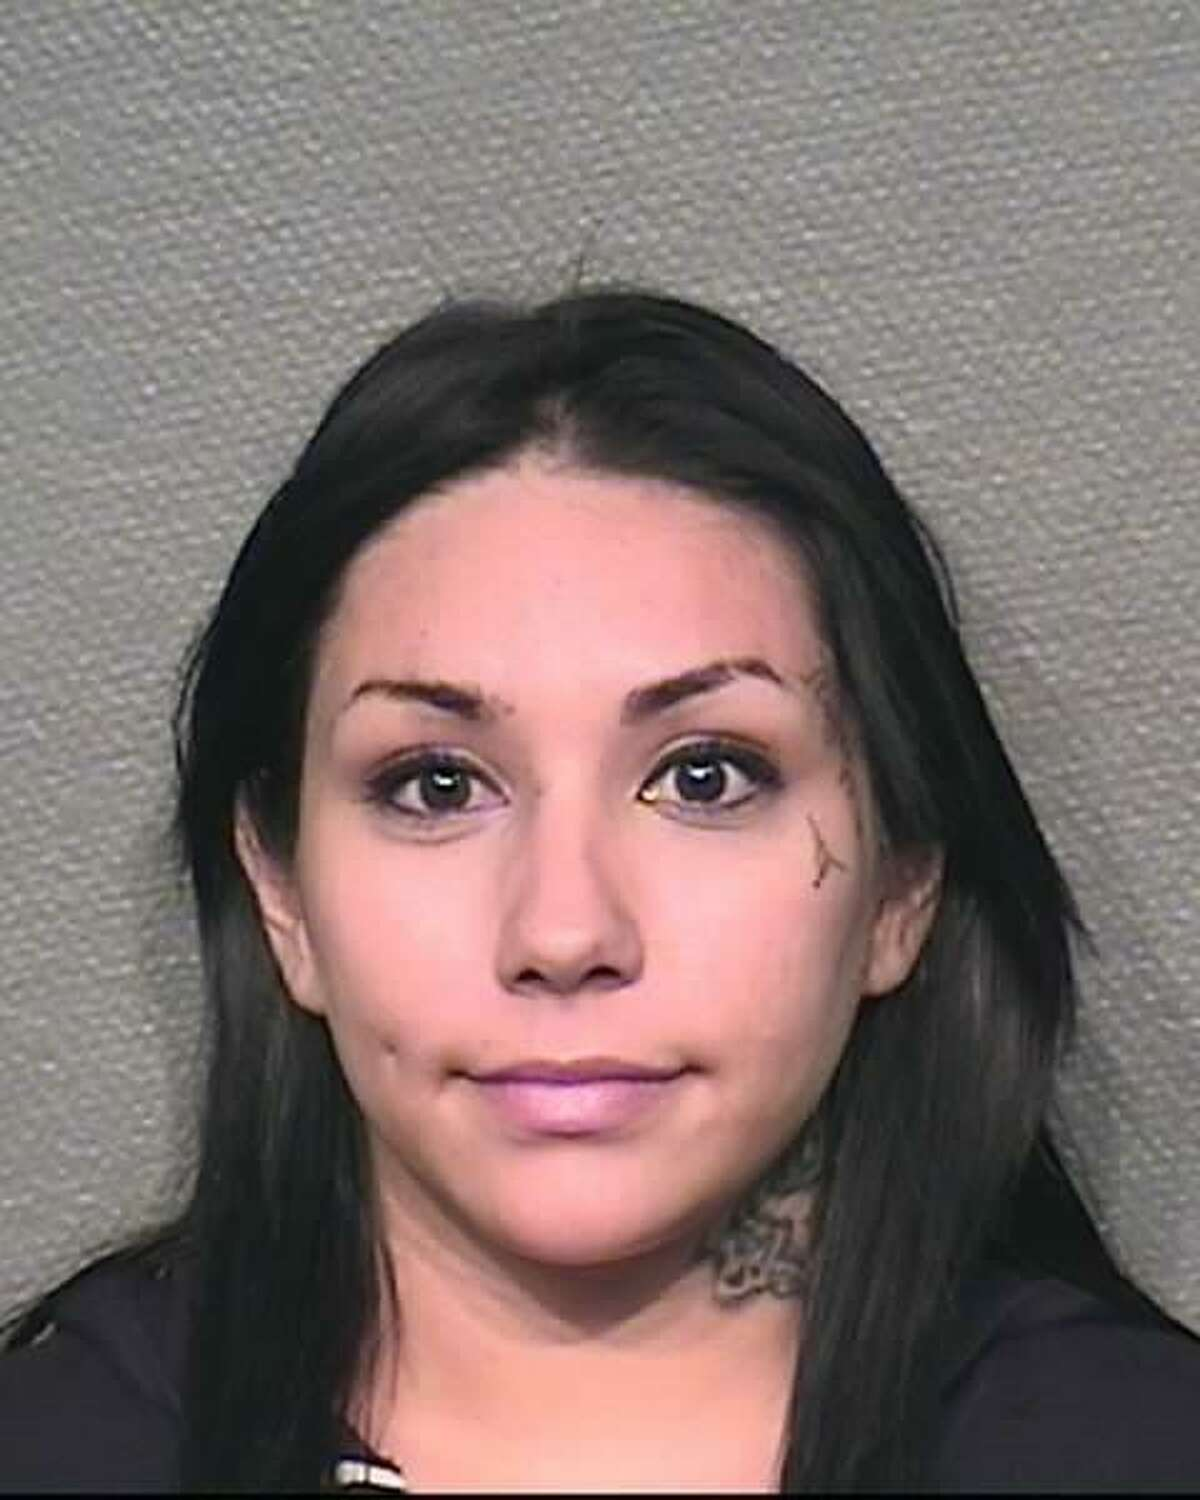 Rachel Vasquez of Houston is wanted by the Harris County Sheriff's Office on a charge of burglary of a habitation.